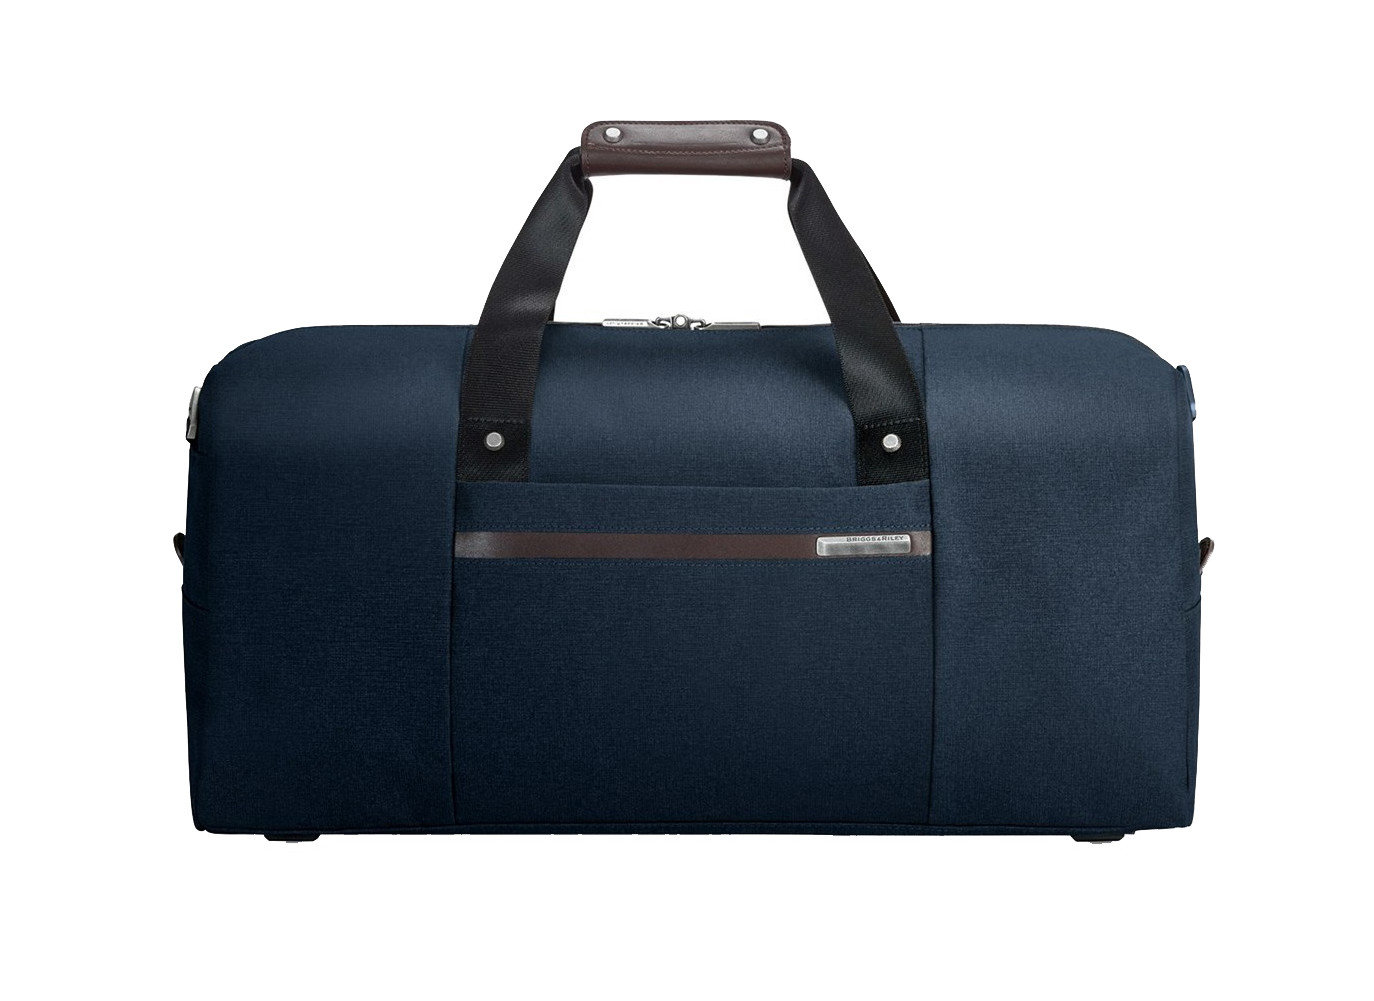 Style + Design accessory bag suitcase luggage product case black suit hand luggage product design briefcase leather brand baggage luggage & bags